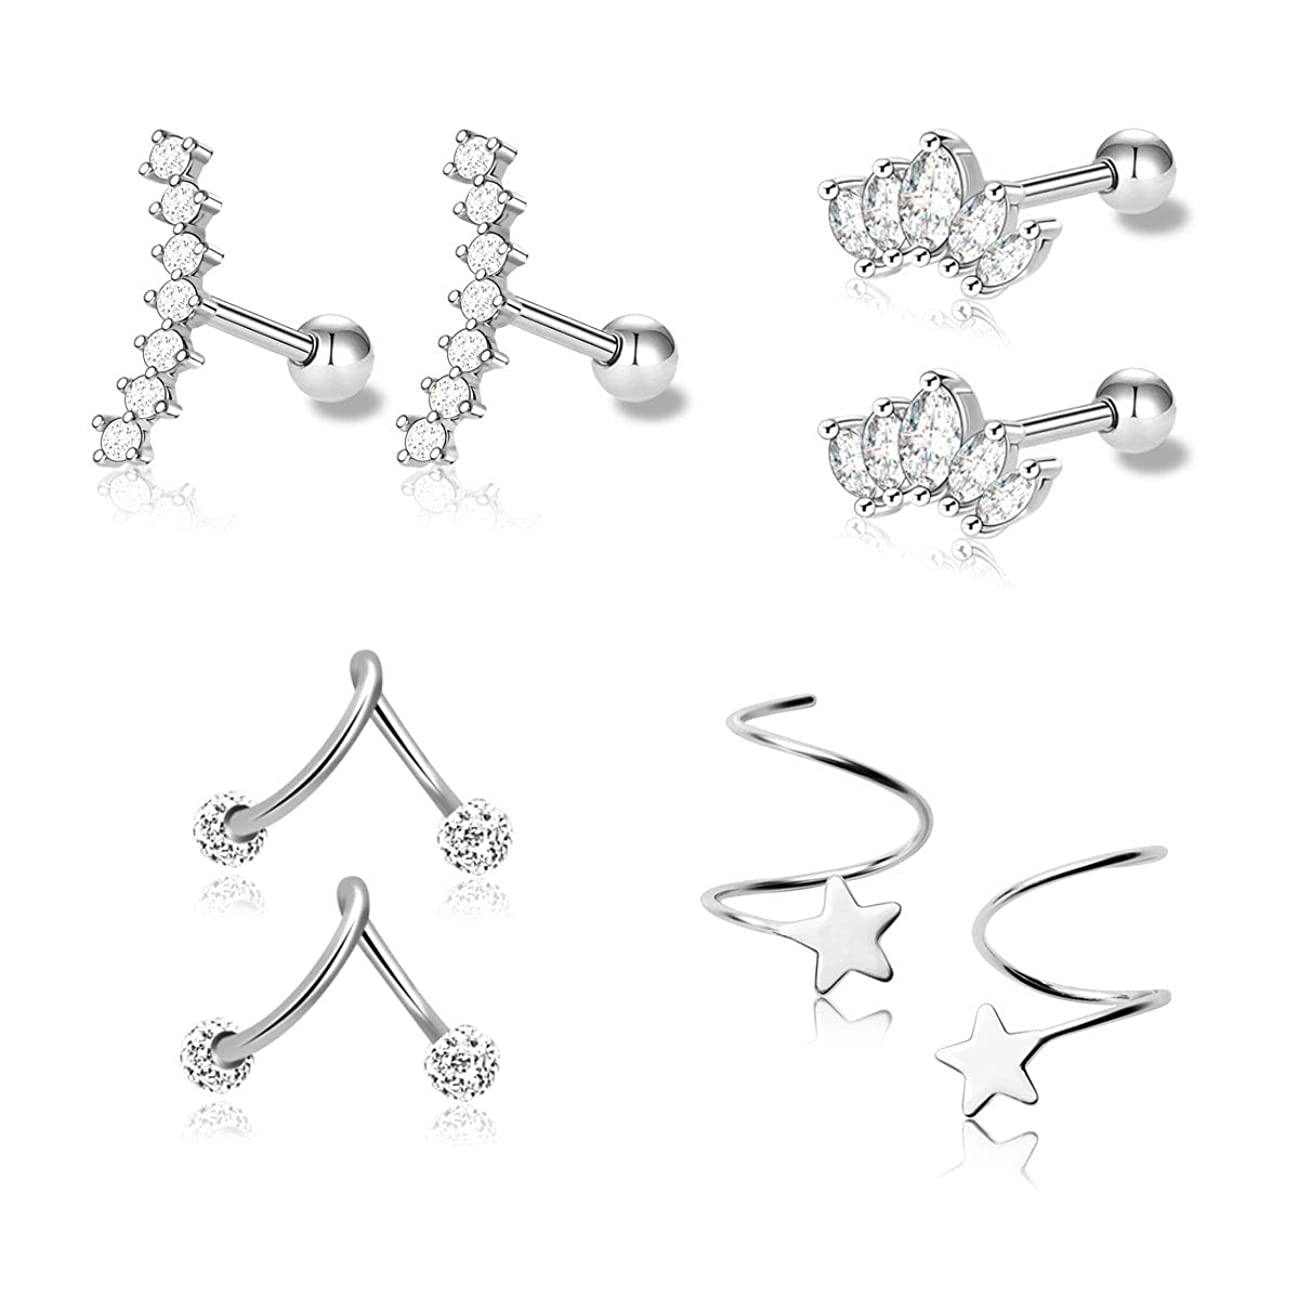 Stainless Steel Ear Cartilage Earrings - Stylish Silver-tragus helix Toned Piercing Jewelry, Trendy Unique Gift for Girls, Women – Suits any Style at Work, Everyday-wear, Events